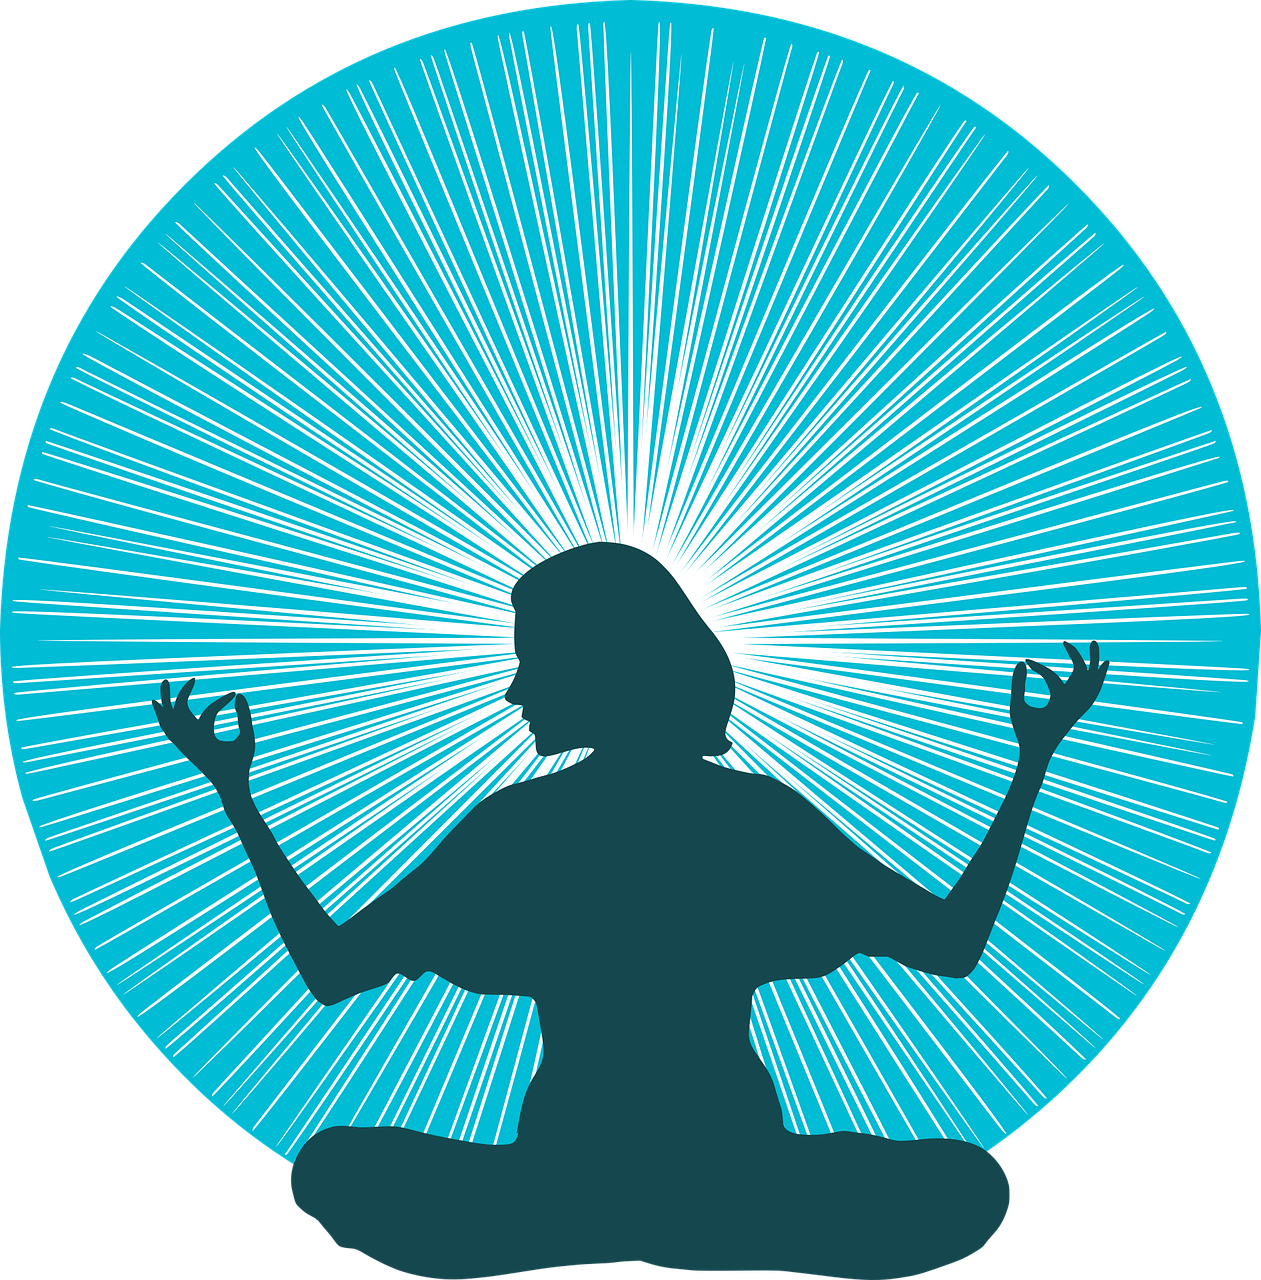 woman yoga meditation free vector graphic on pixabay https creativecommons org licenses publicdomain